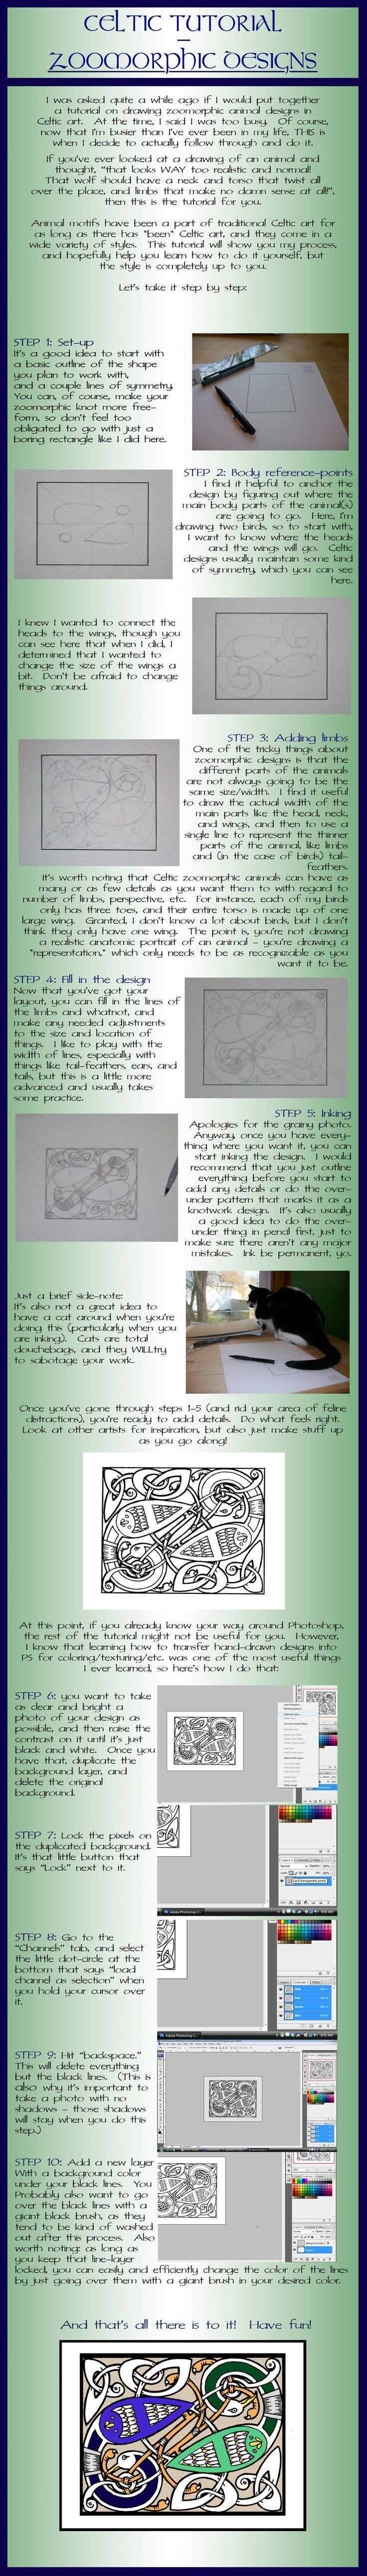 Tutorial - Celtic Zoomorphic Designs by one-rook